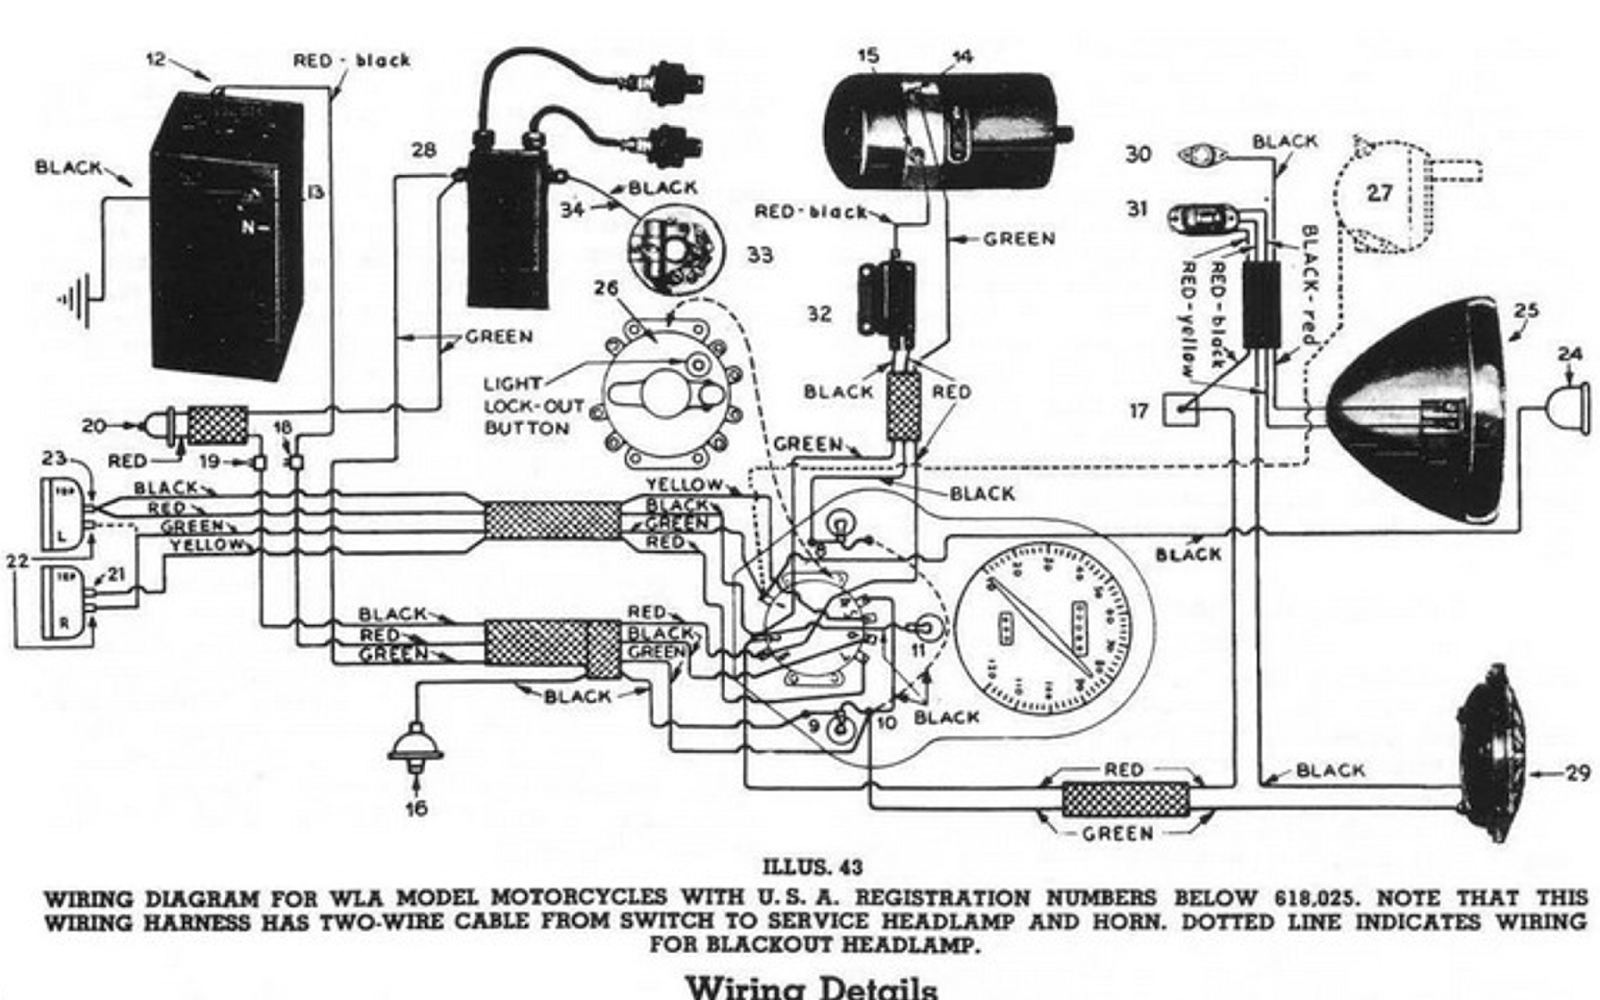 1941 Harley Davidson Wl Restoration Re Wiring The Early Delco Starter Generator Diagram I Have Started Here Is A From Wla Manual For Models